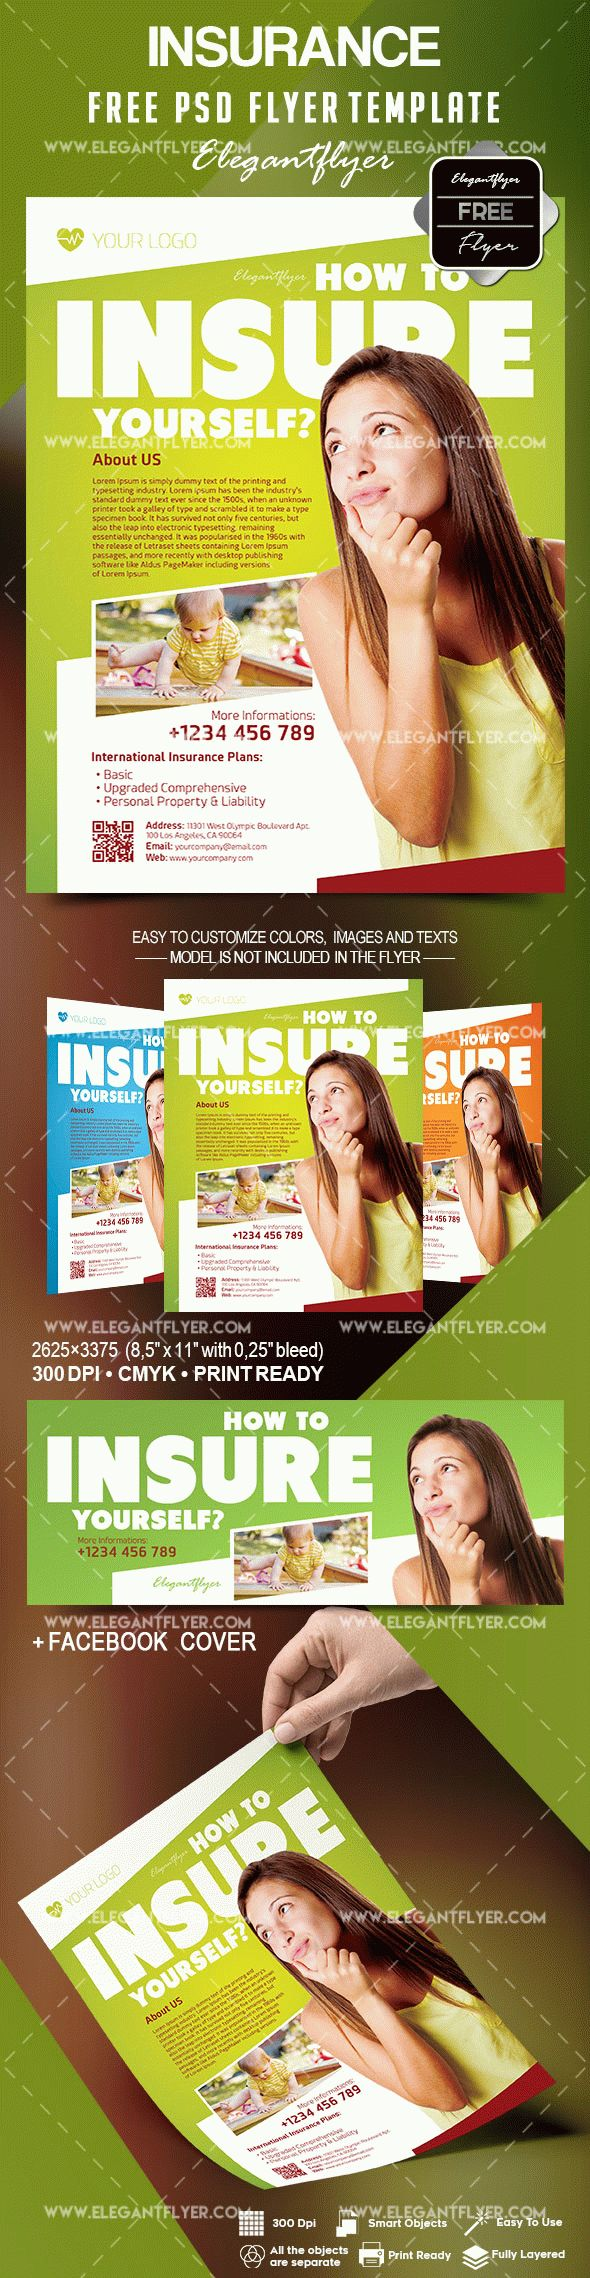 Free Insurance Flyer Template